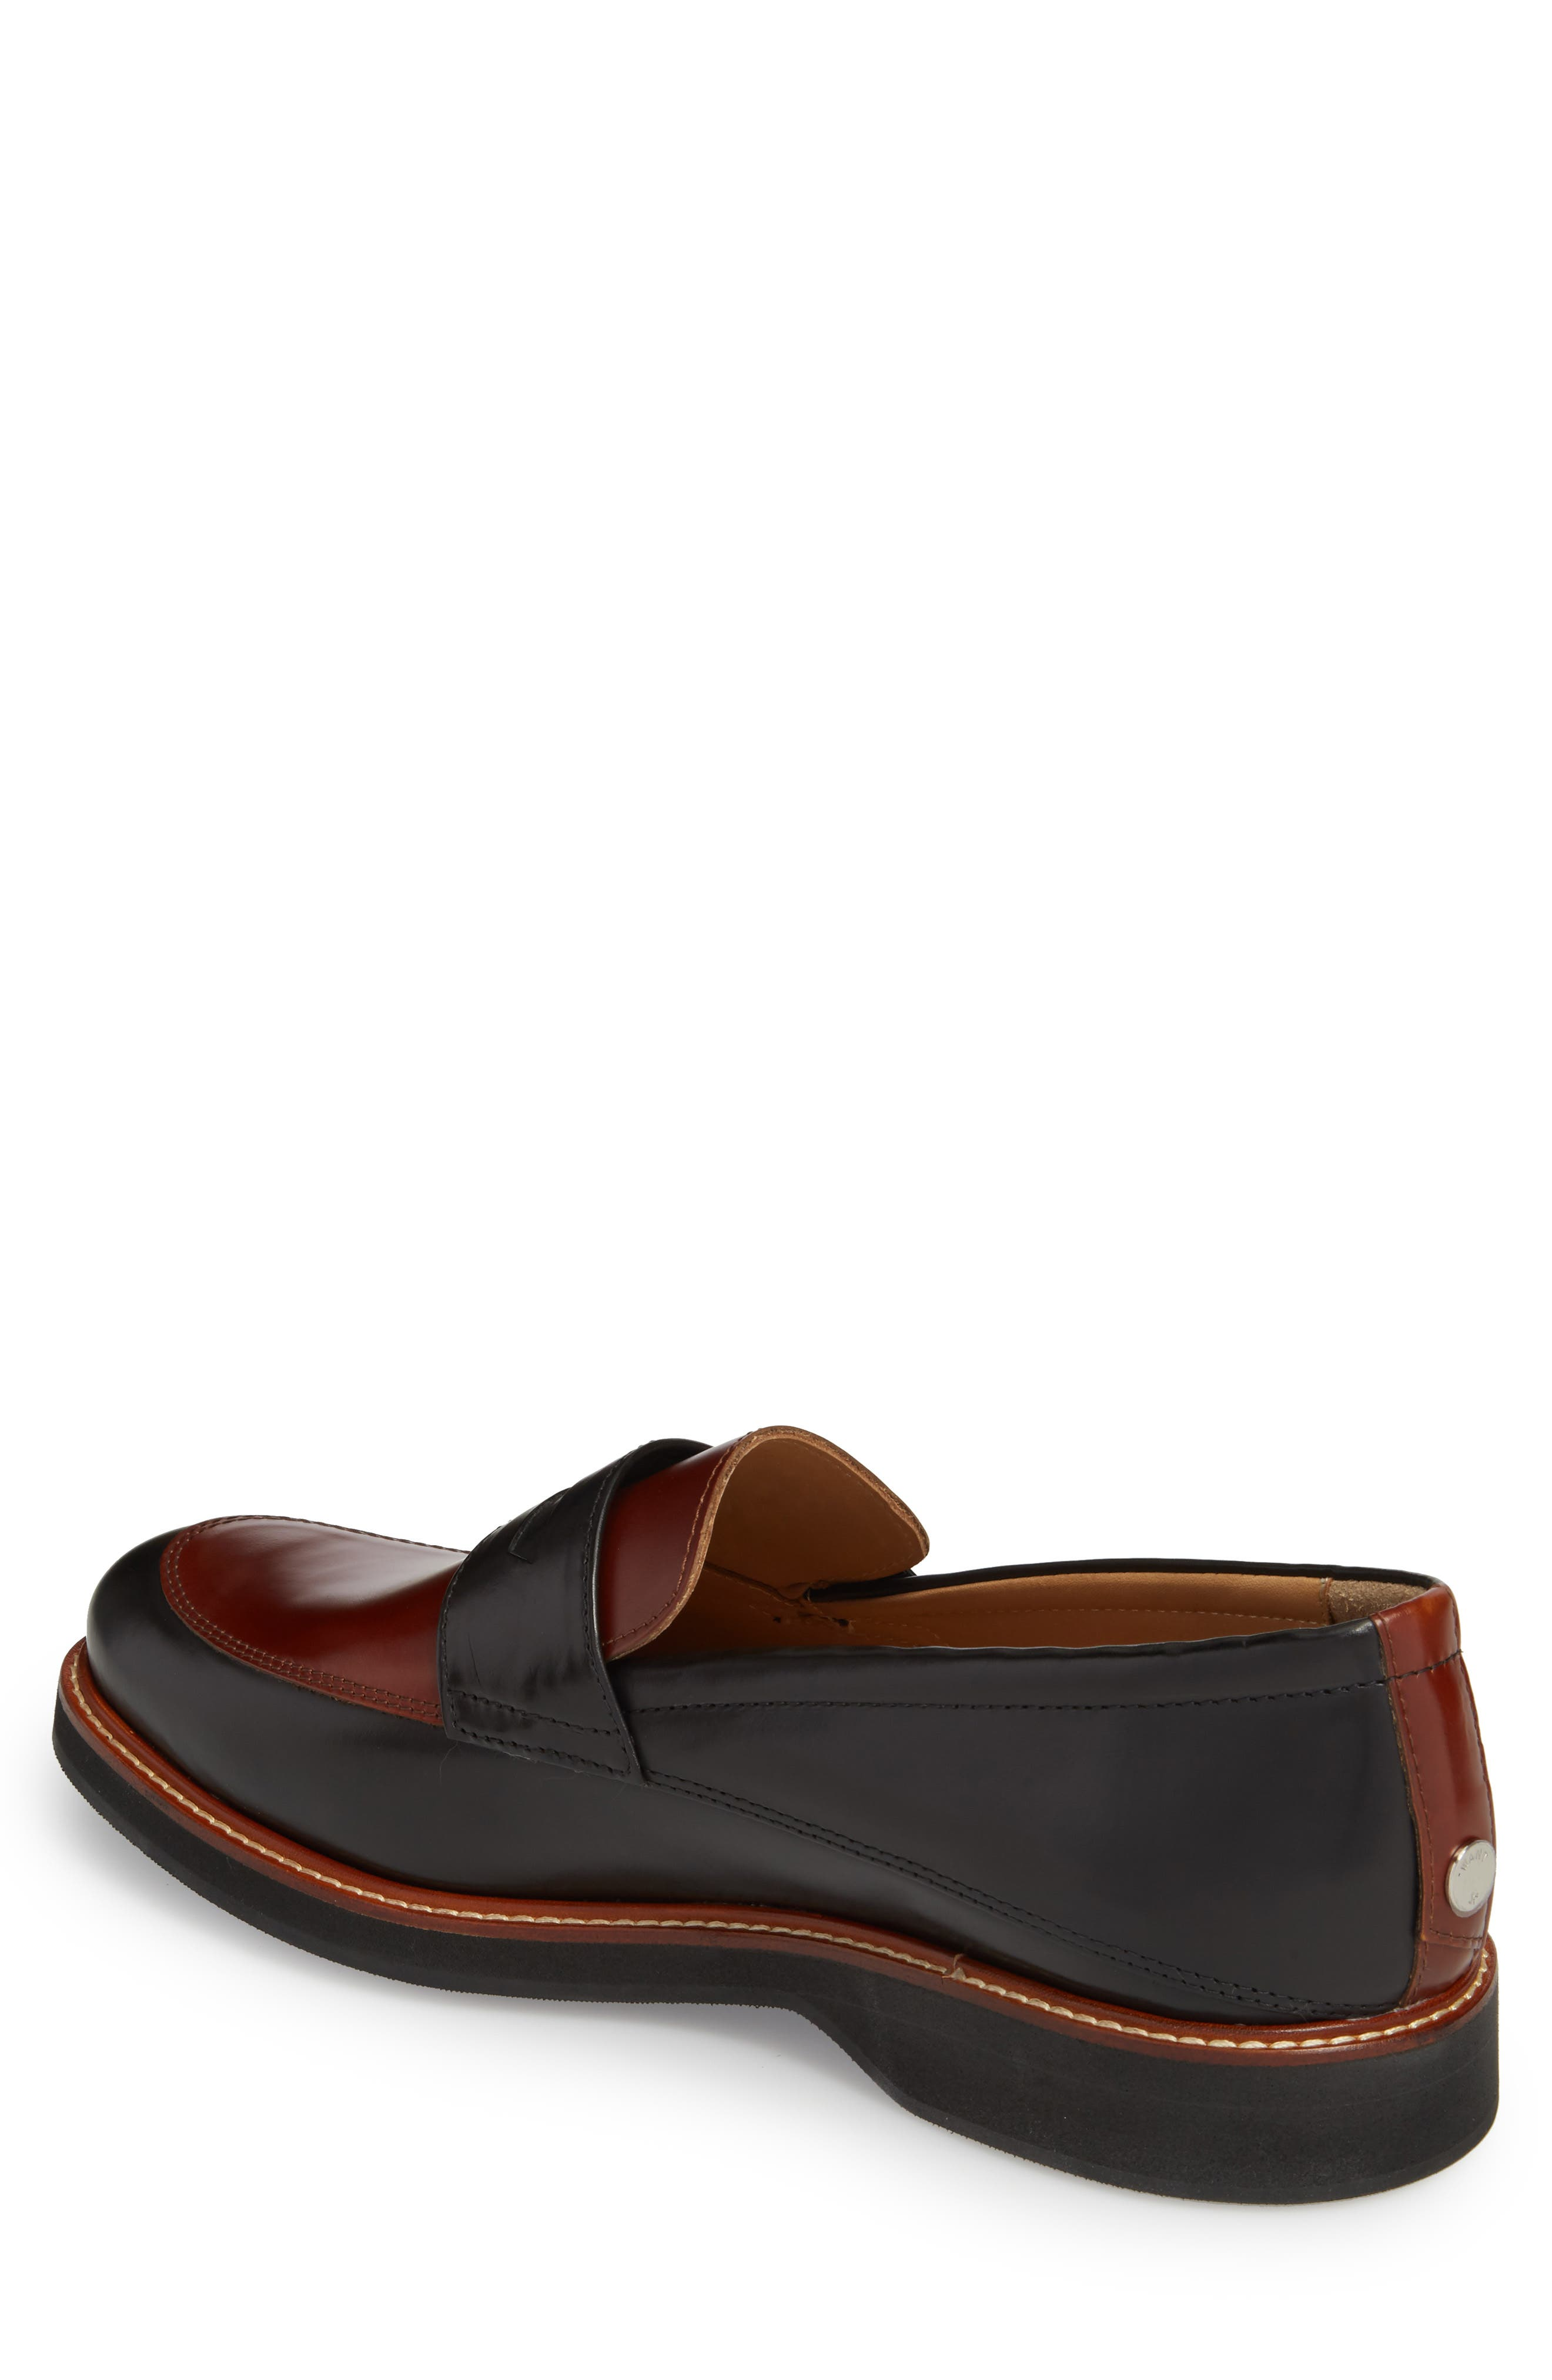 Marcus Penny Loafer,                             Alternate thumbnail 2, color,                             Black/ Cognac